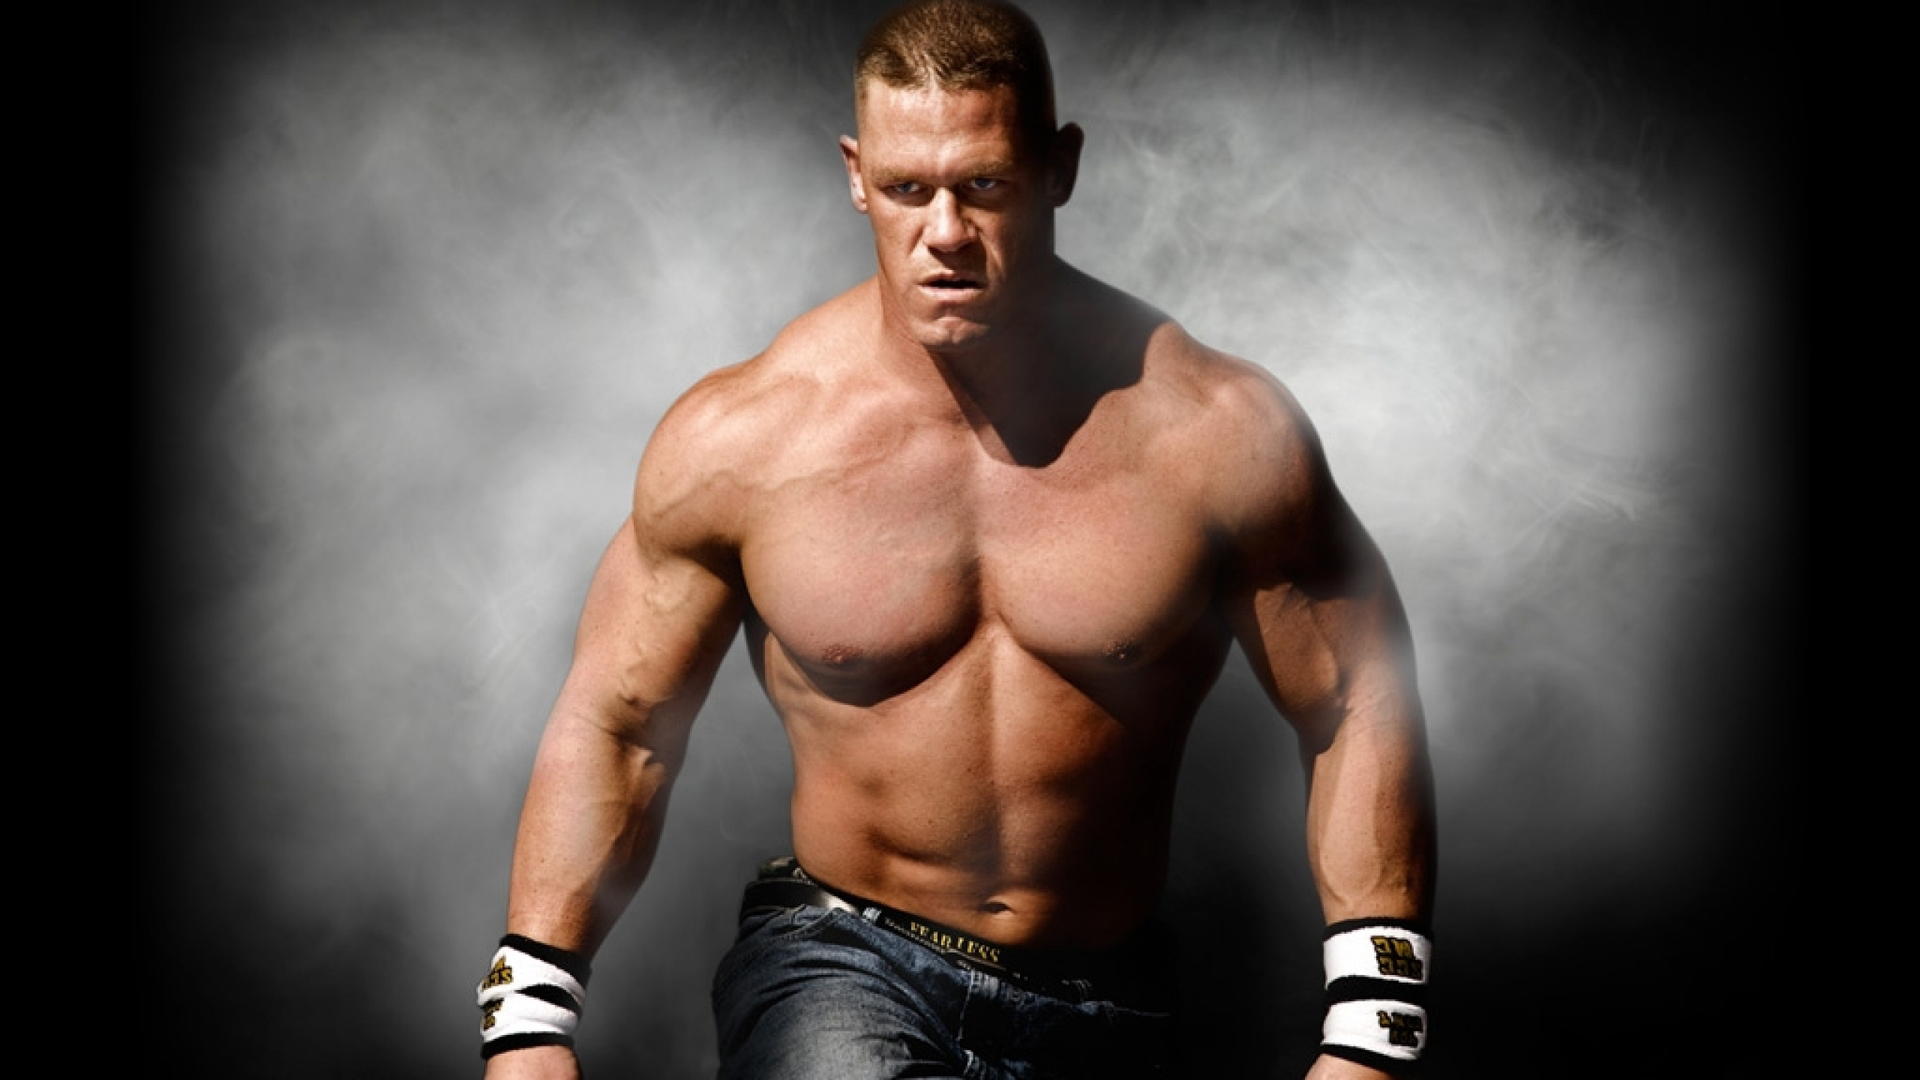 John-Cena-must-downloads-1920×1080-Pics-Of-John-Cena-Ador-wallpaper-wp3407629